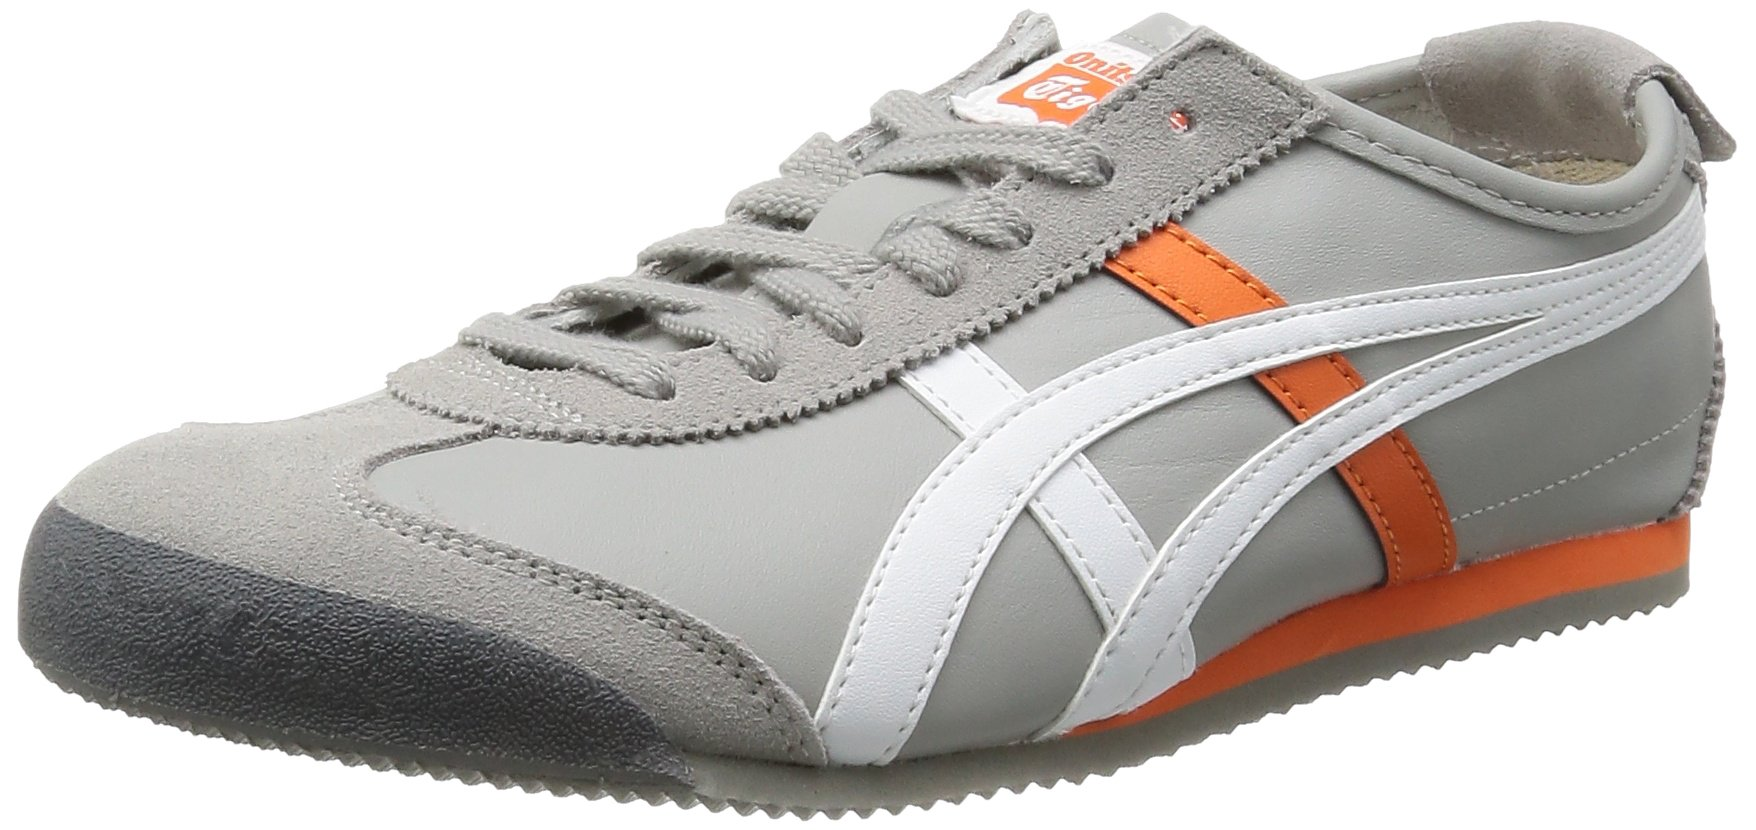 promo code 7ea52 604eb Galleon - Asics Onitsuka Tiger Mexico 66 Casual Shoes LIGHT ...